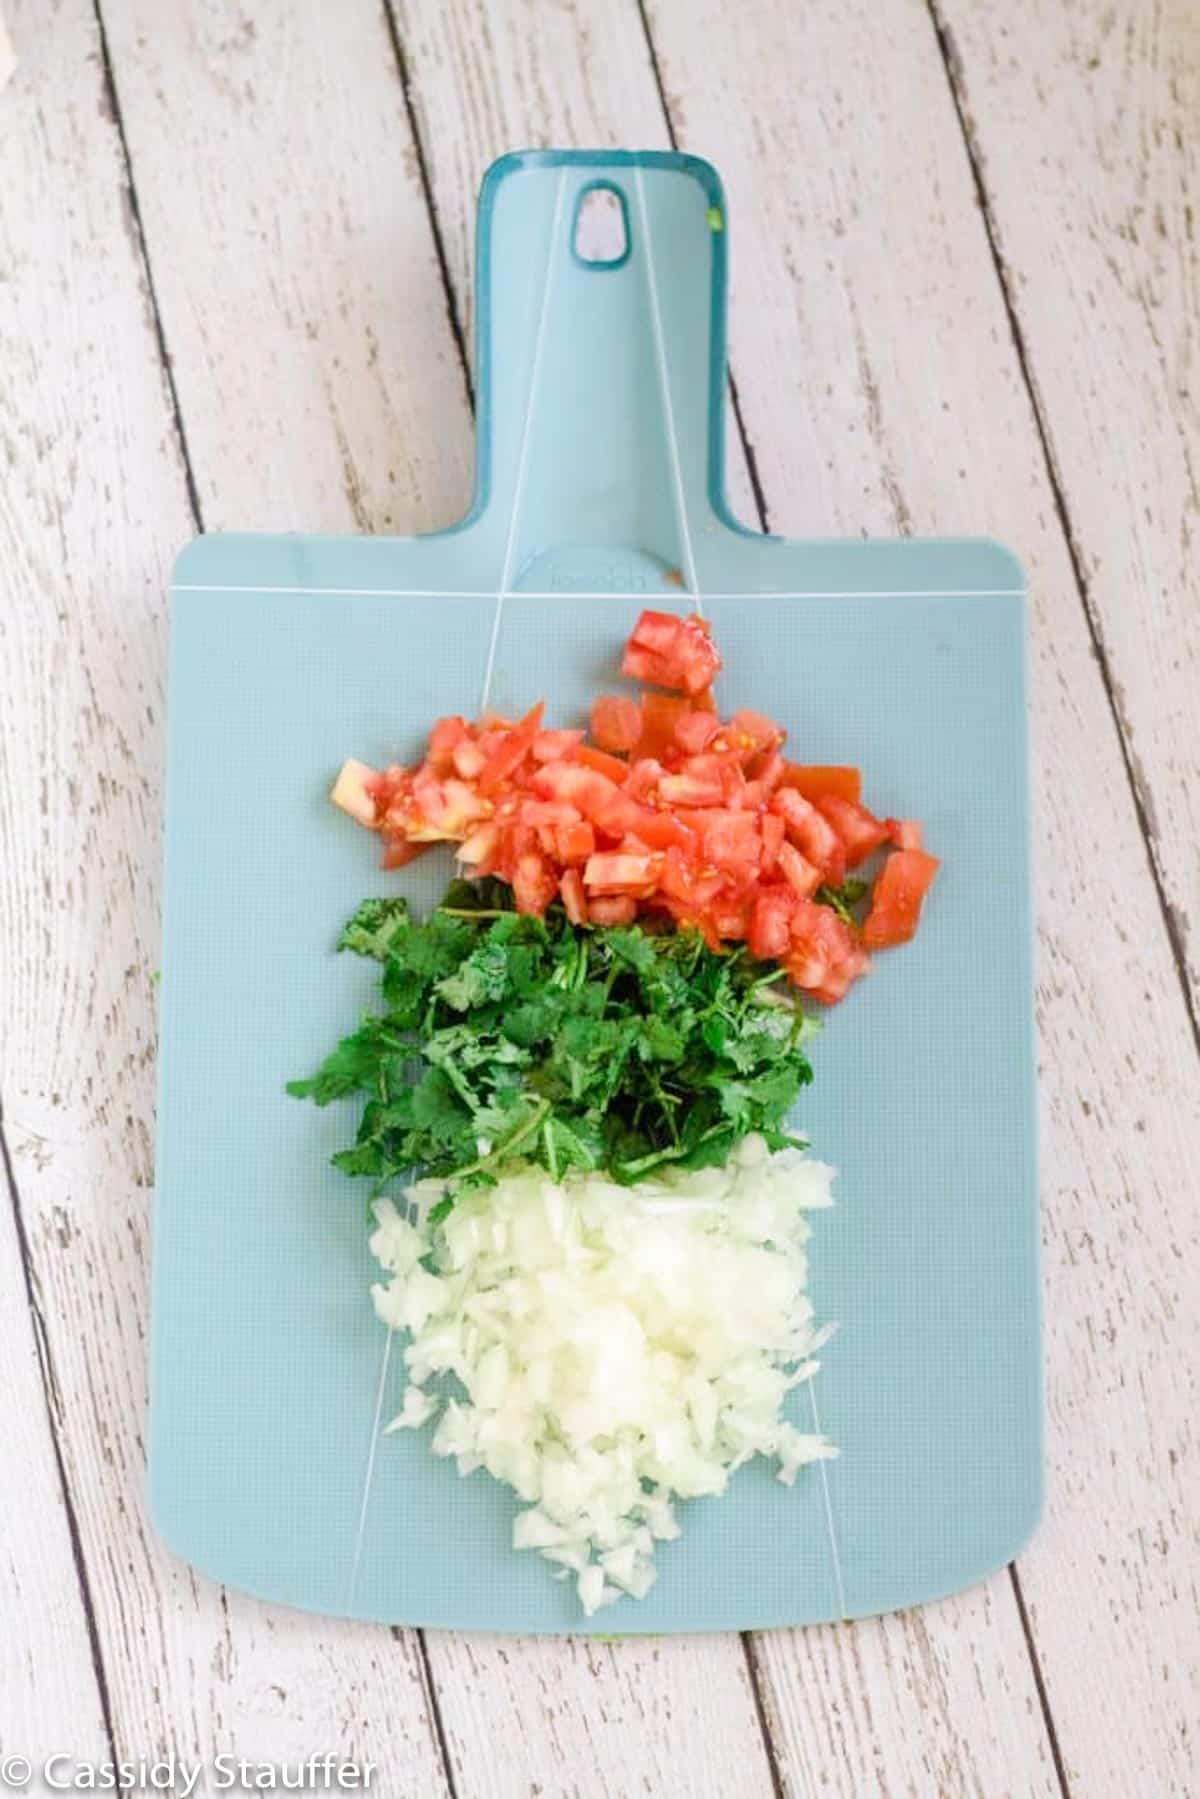 Chopped onion, cilantro, and tomatoes on a cutting board